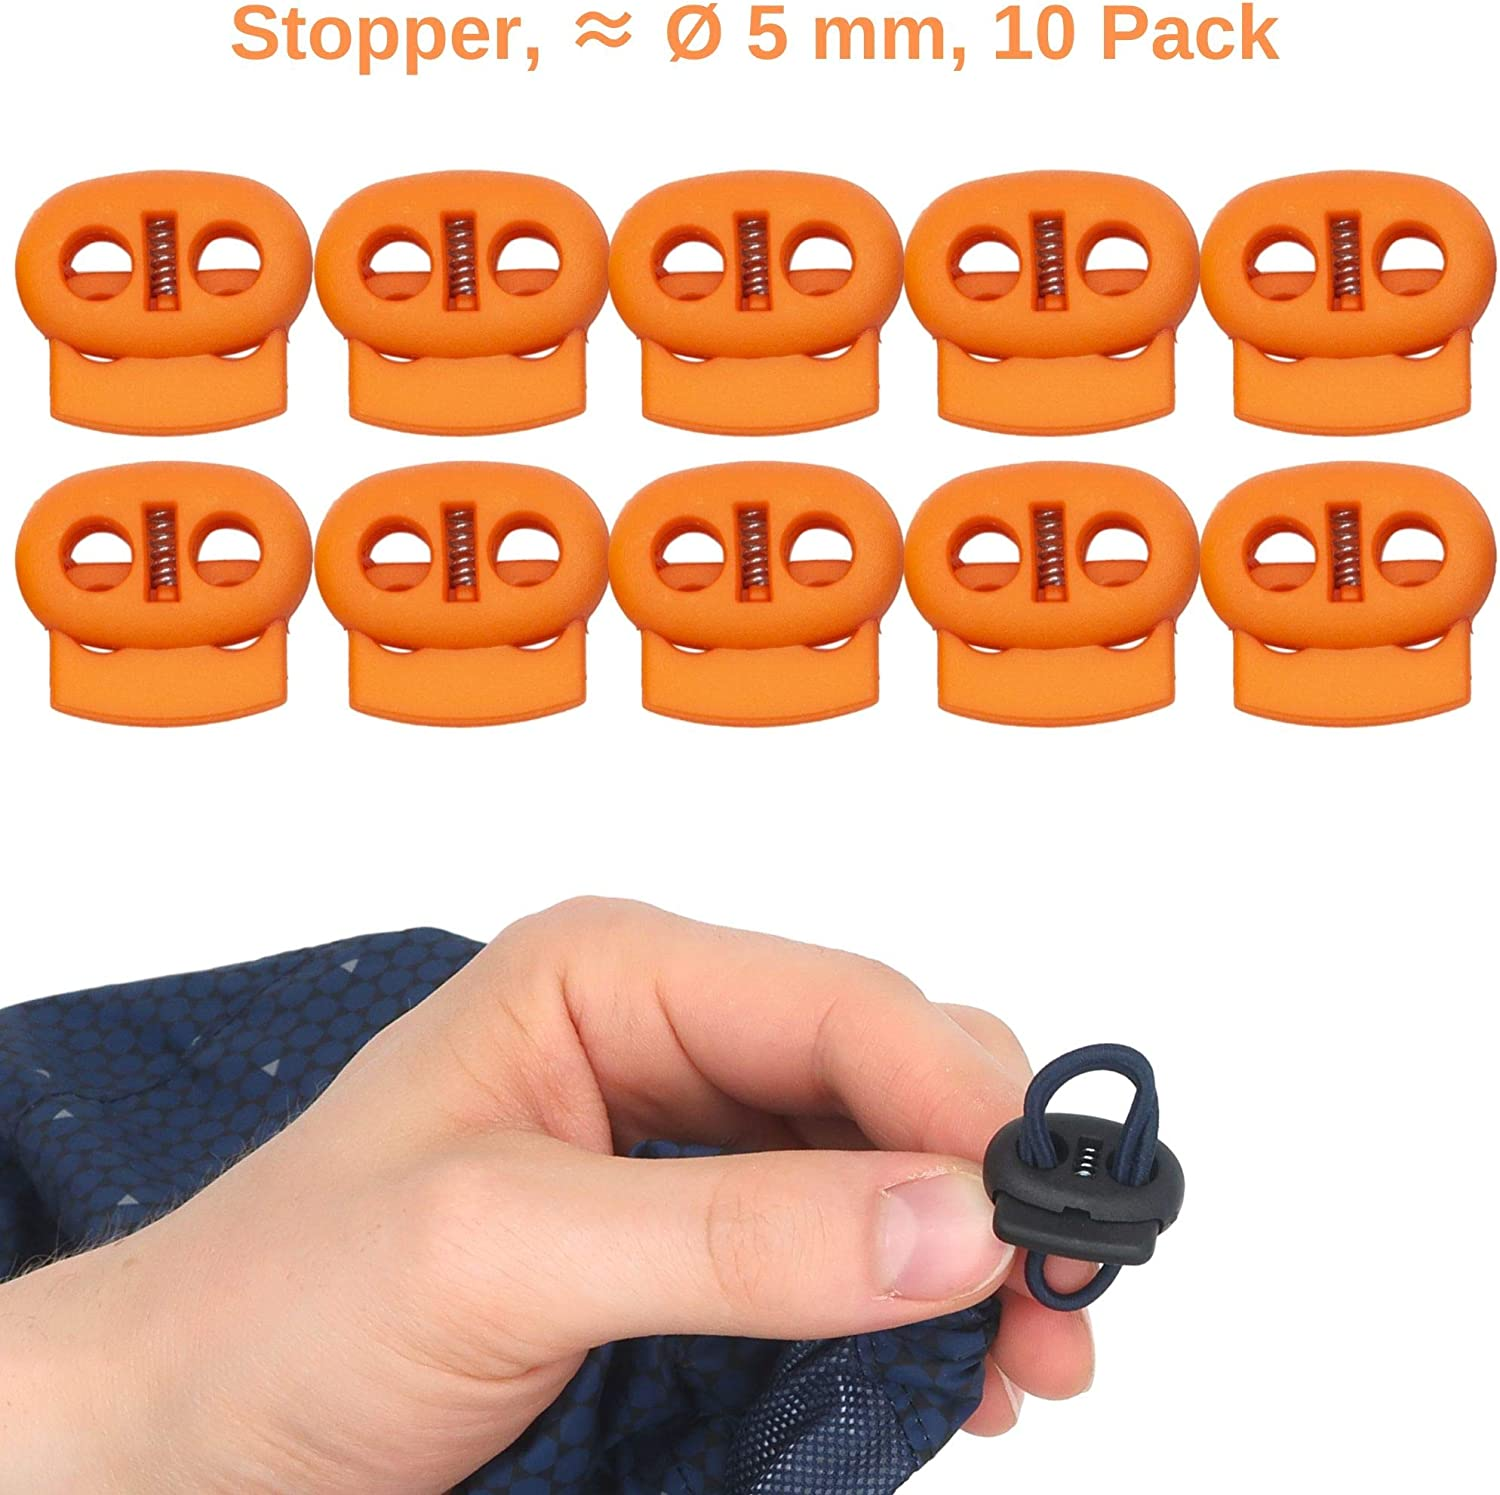 /Ø 5 mm Hole Cord Adjuster Drawstring Stopper Cord Fastener 5 mm Cord Stopper with Double Hole 10 Pack Cord Lock with Push Button 22 x 20 mm Ideal for /Ø 4 mm Drawstrings Spring Cord Lock